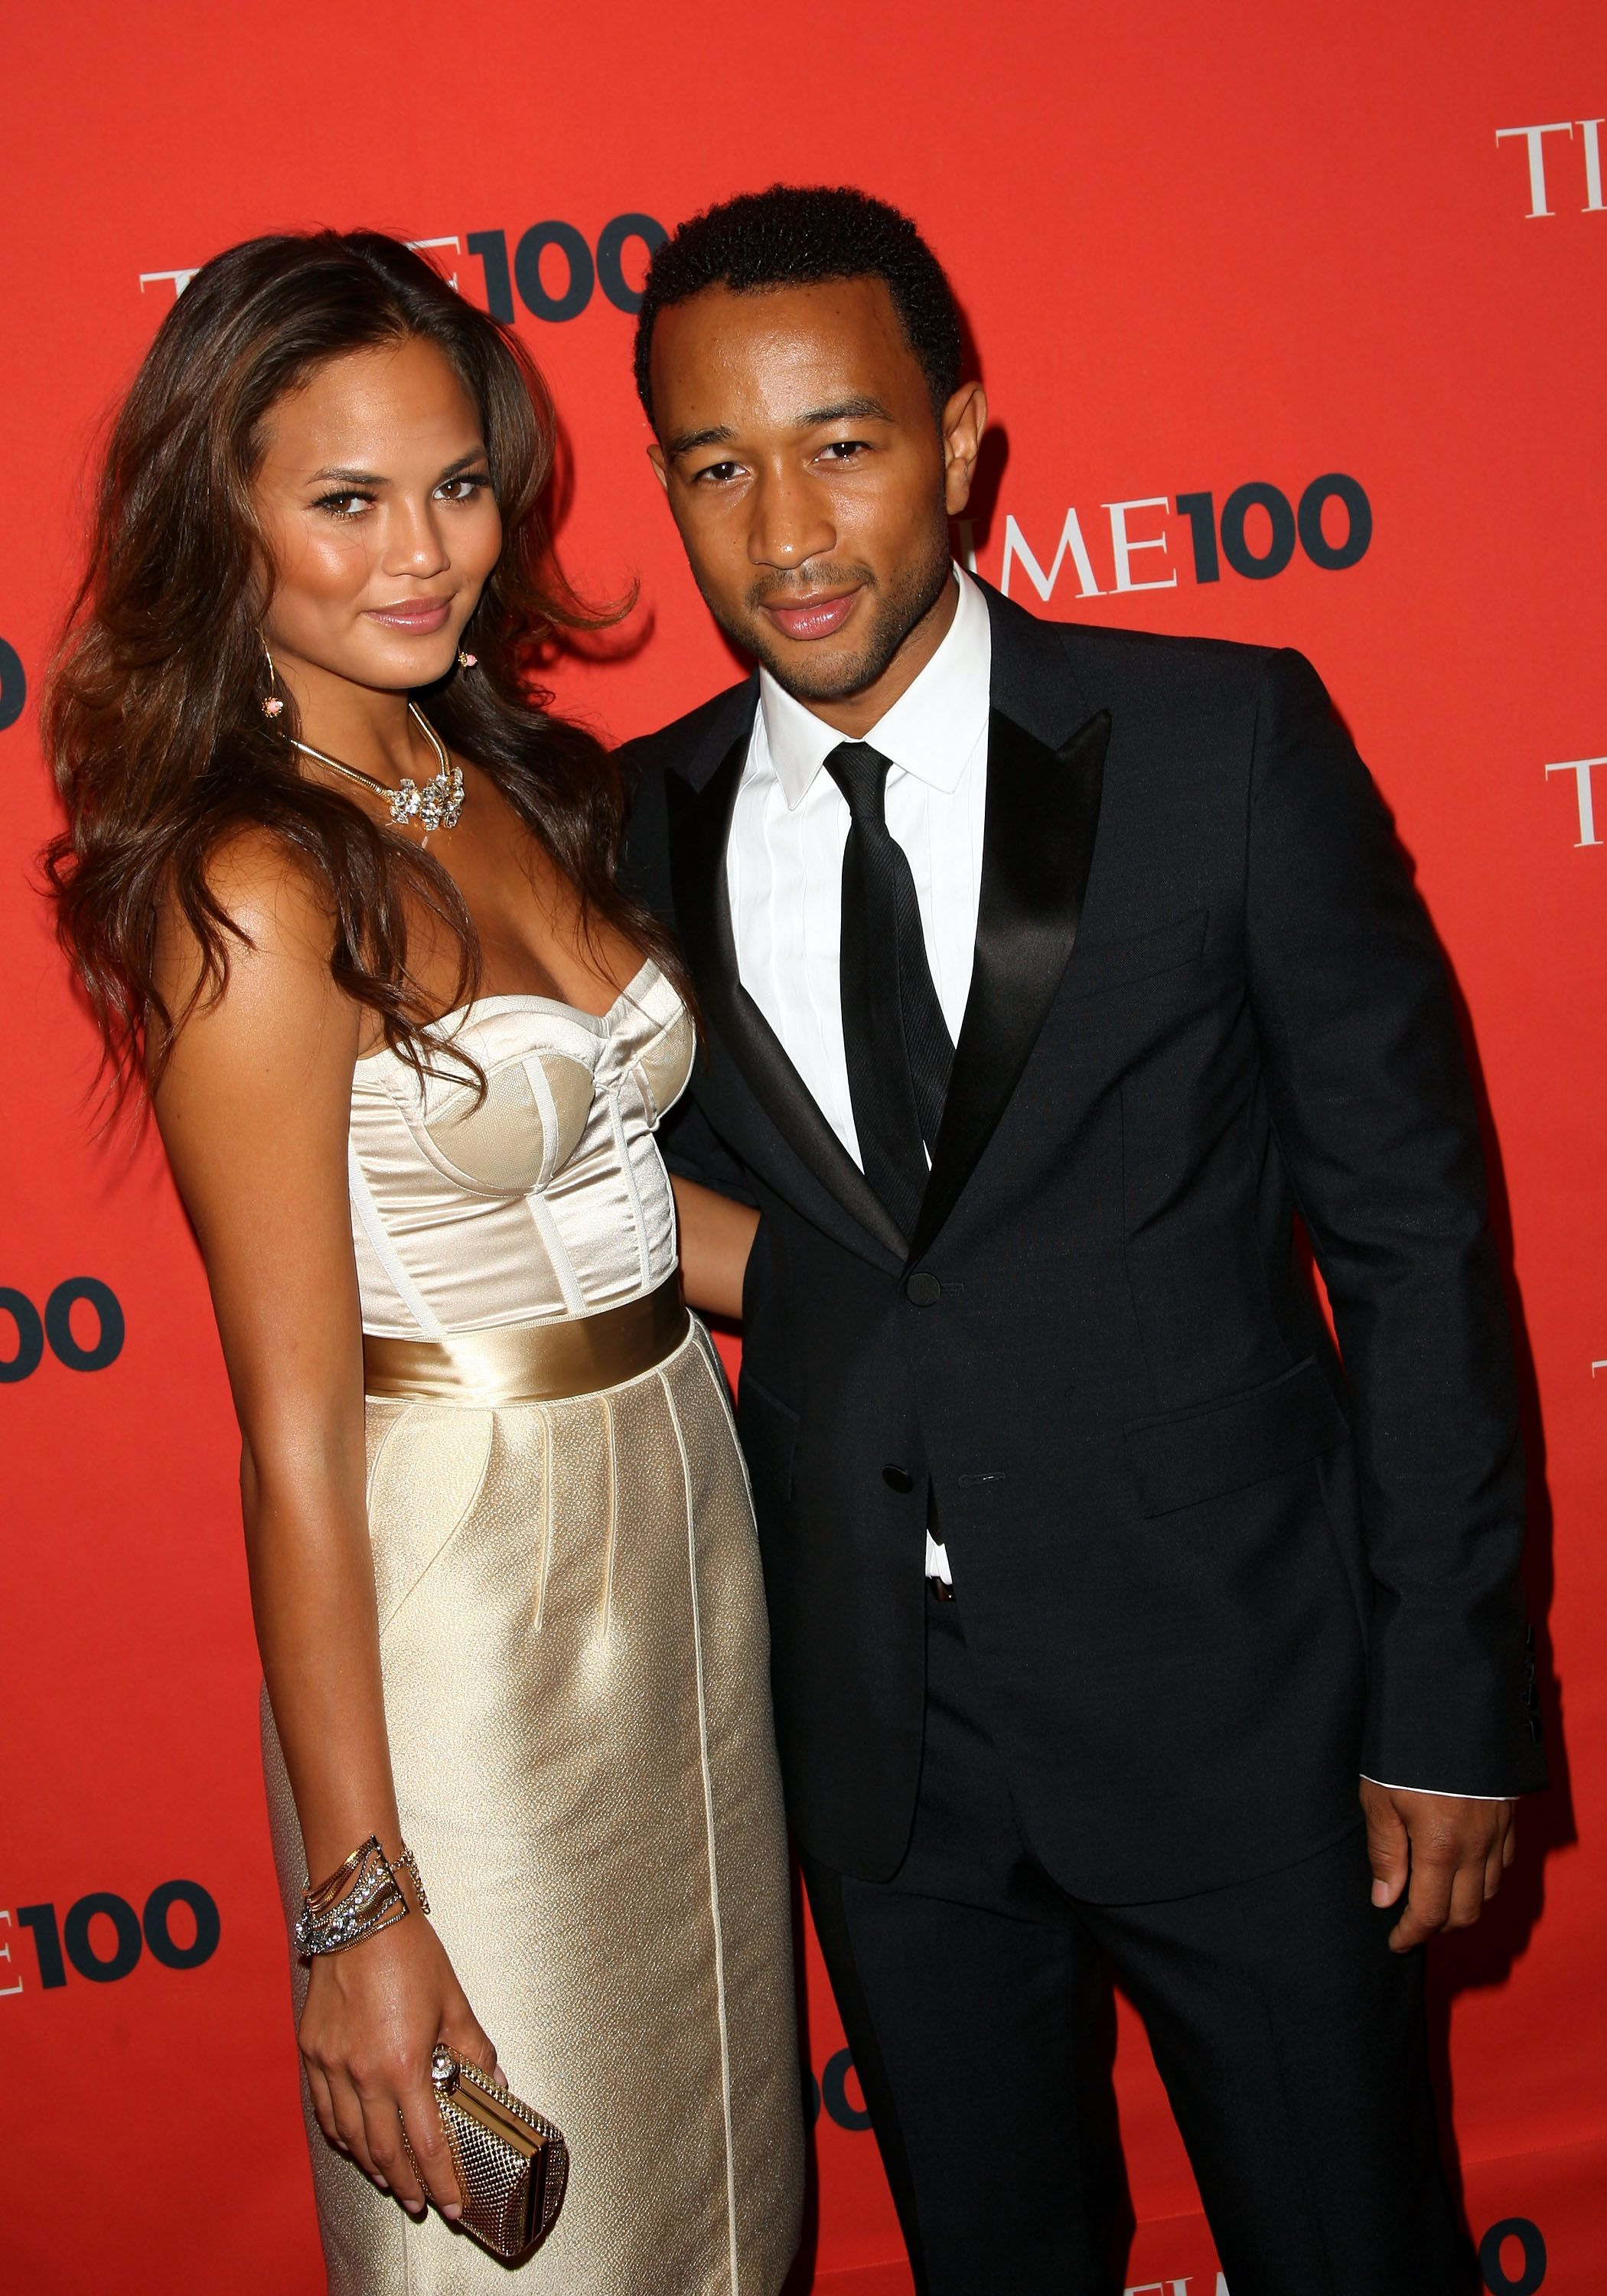 John Legend and Chrissy Teigen during Time's 100 Most Influential People in the World Gala at the Frederick P. Rose Hall at Jazz at Lincoln Center on May 5, 2009 in New York City.  | Source: Getty Images